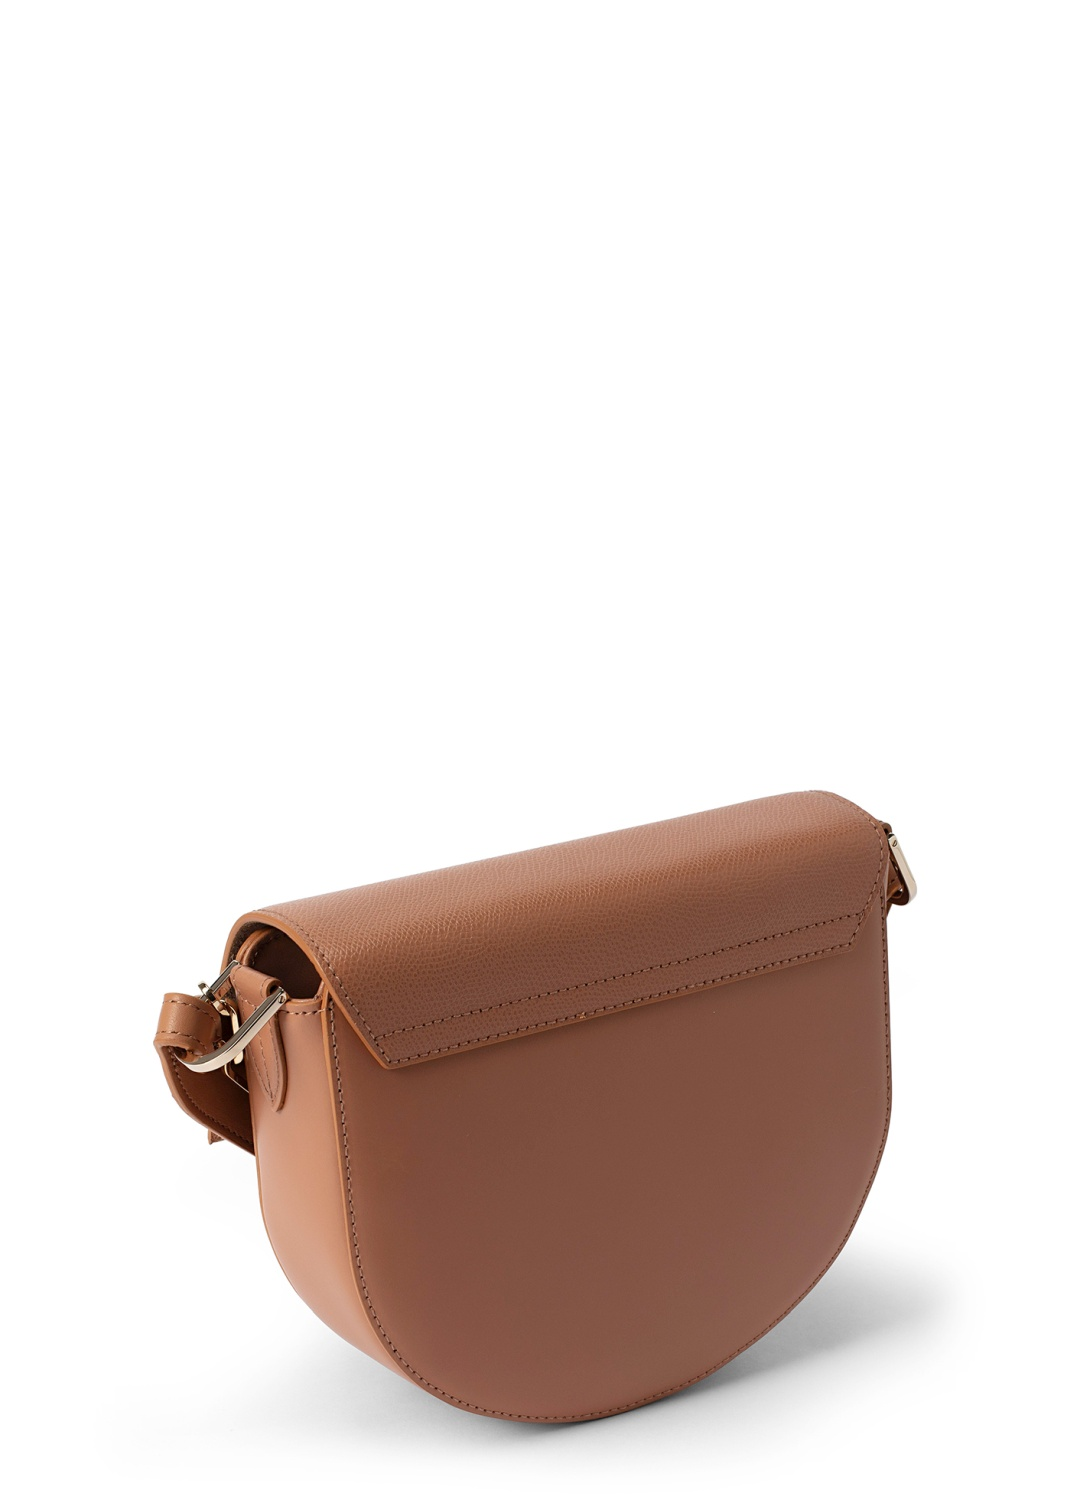 FURLA MISS MIMI' MINI CROSSBODY image number 1